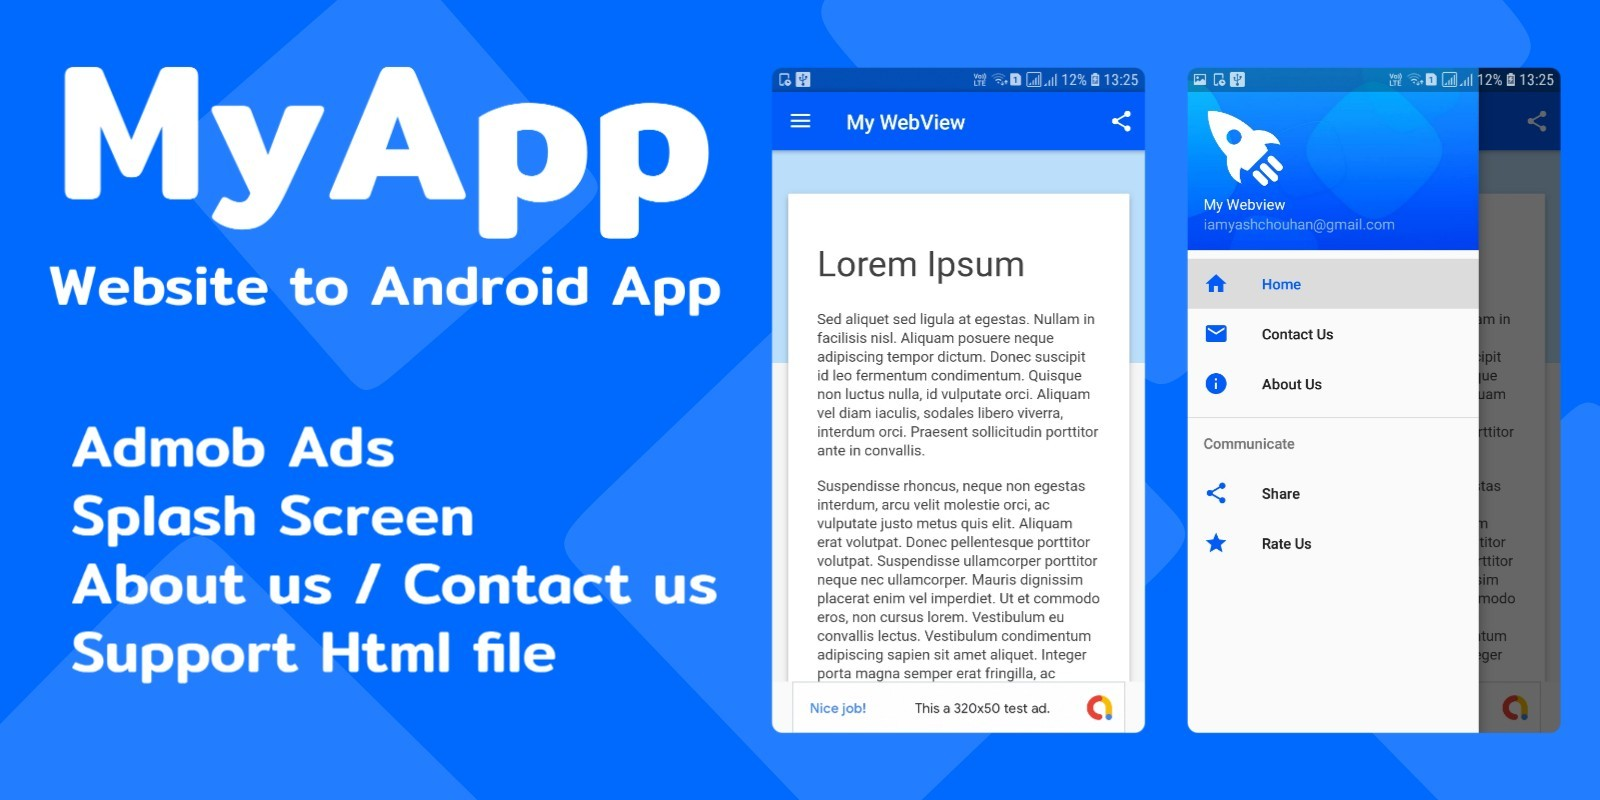 MyApp - Website to Android App